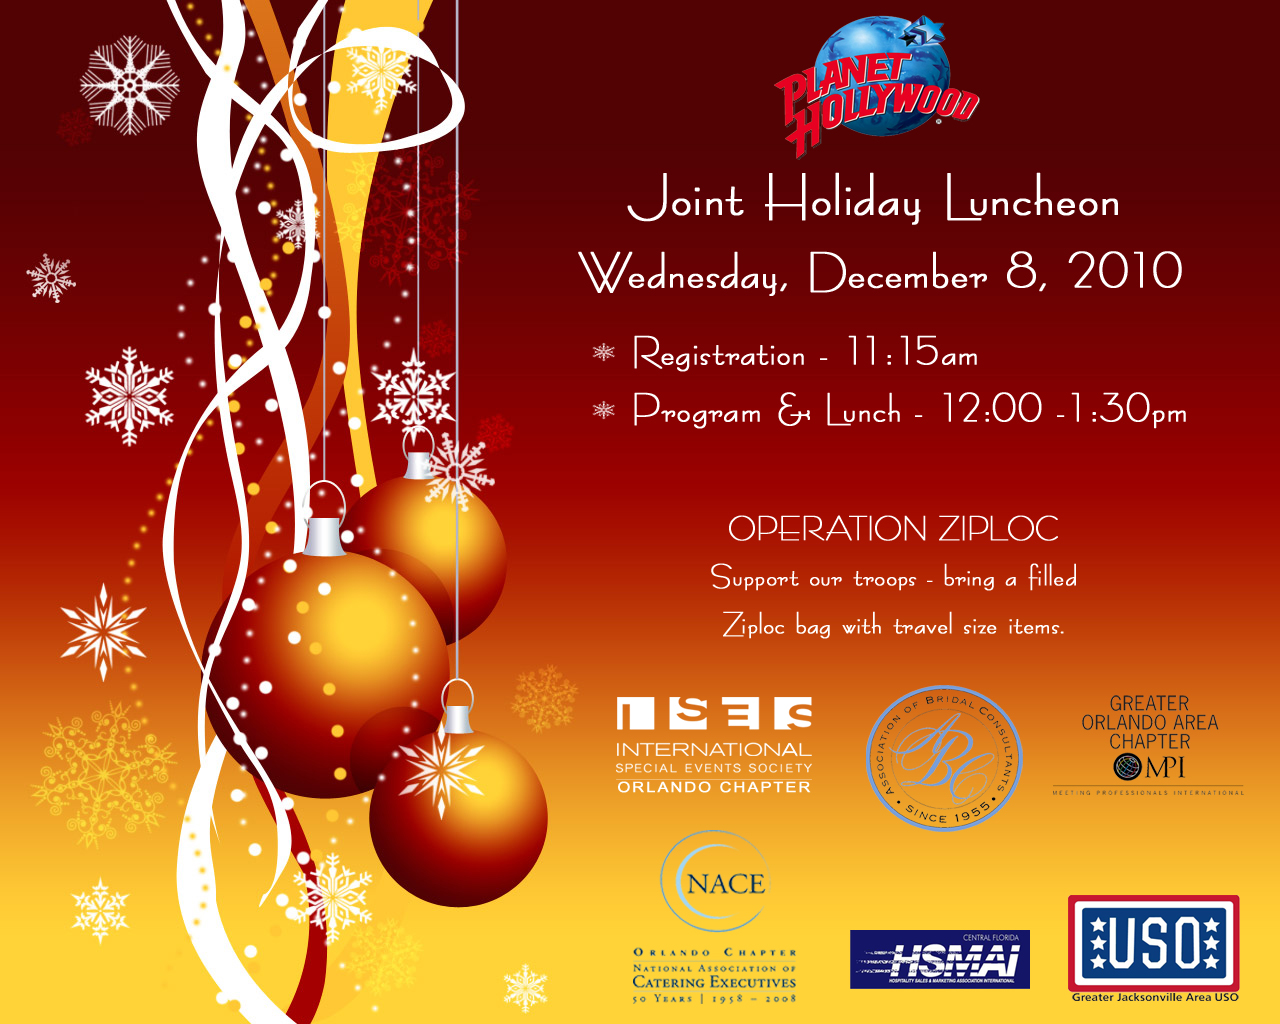 2010 Joint Holiday Luncheon Flyer